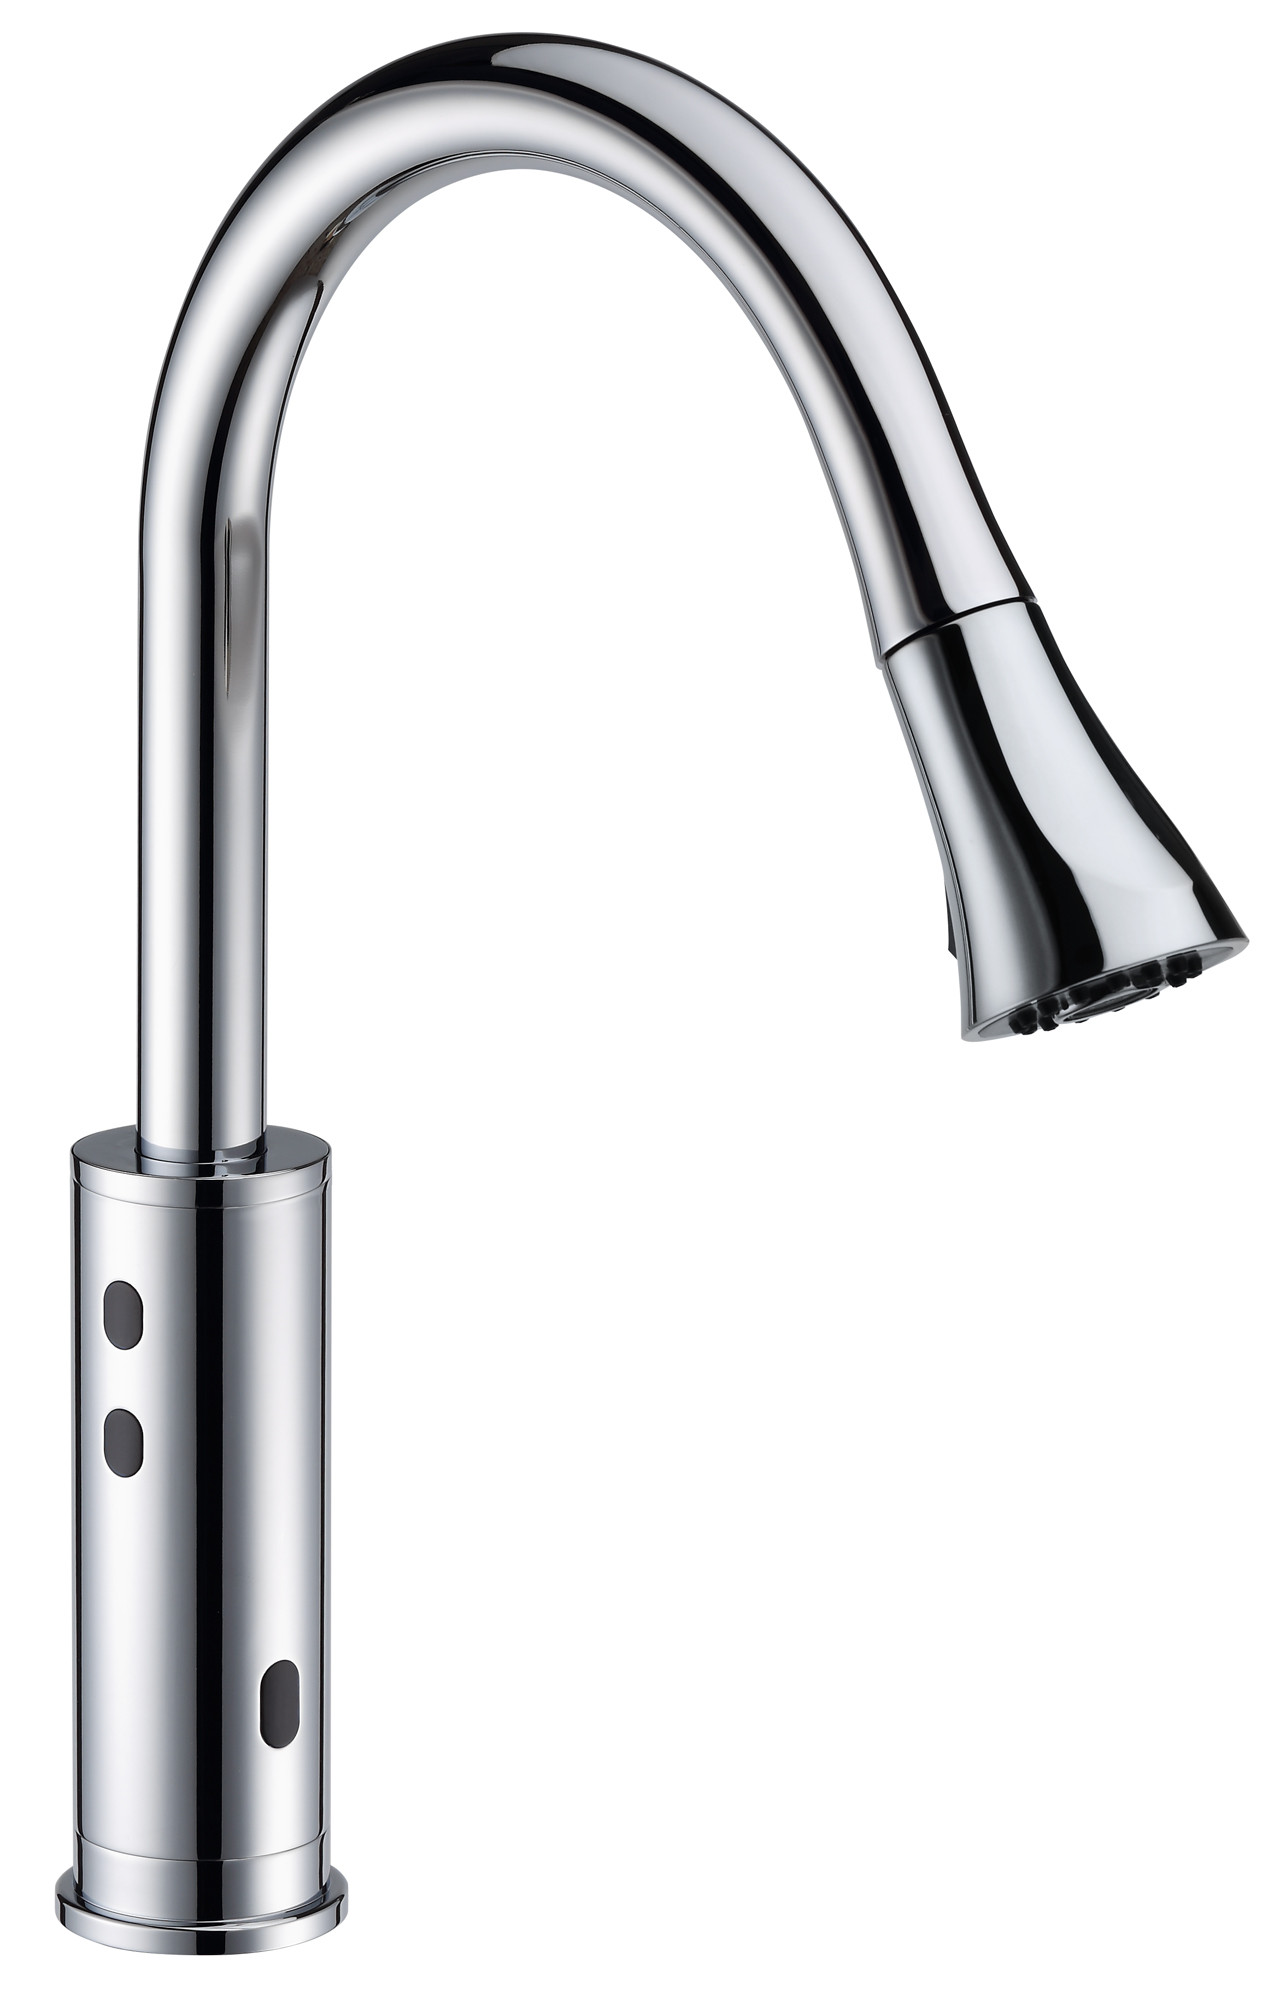 Cinaton C2201 Touch Free Easy Operation Pull Down Spray Kitchen Faucet